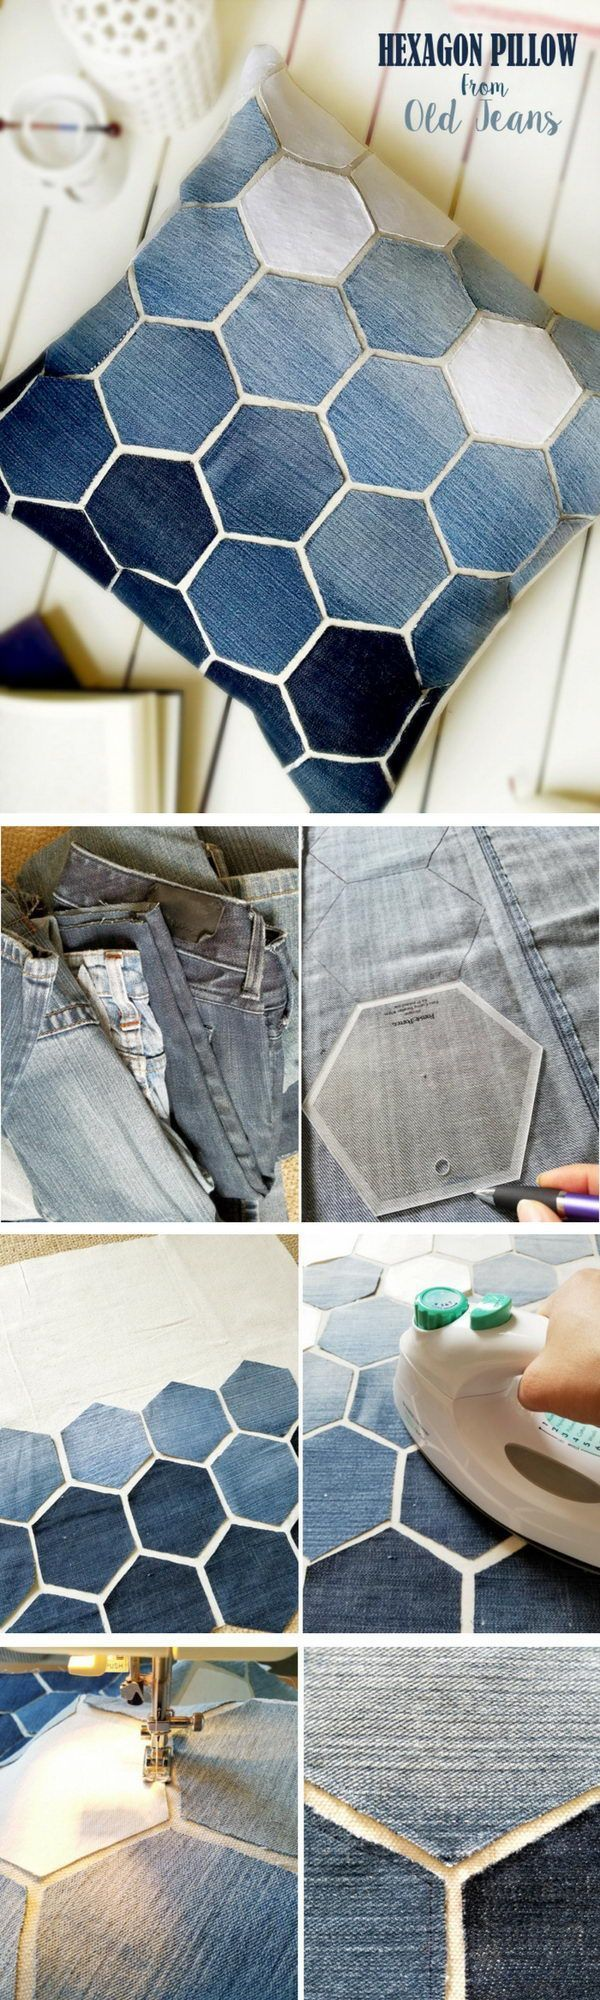 20 Inventive DIY Concepts to Repurpose Your Outdated Denims 2018 – #Inventive #diy #Concepts #Denims #Repurpose –